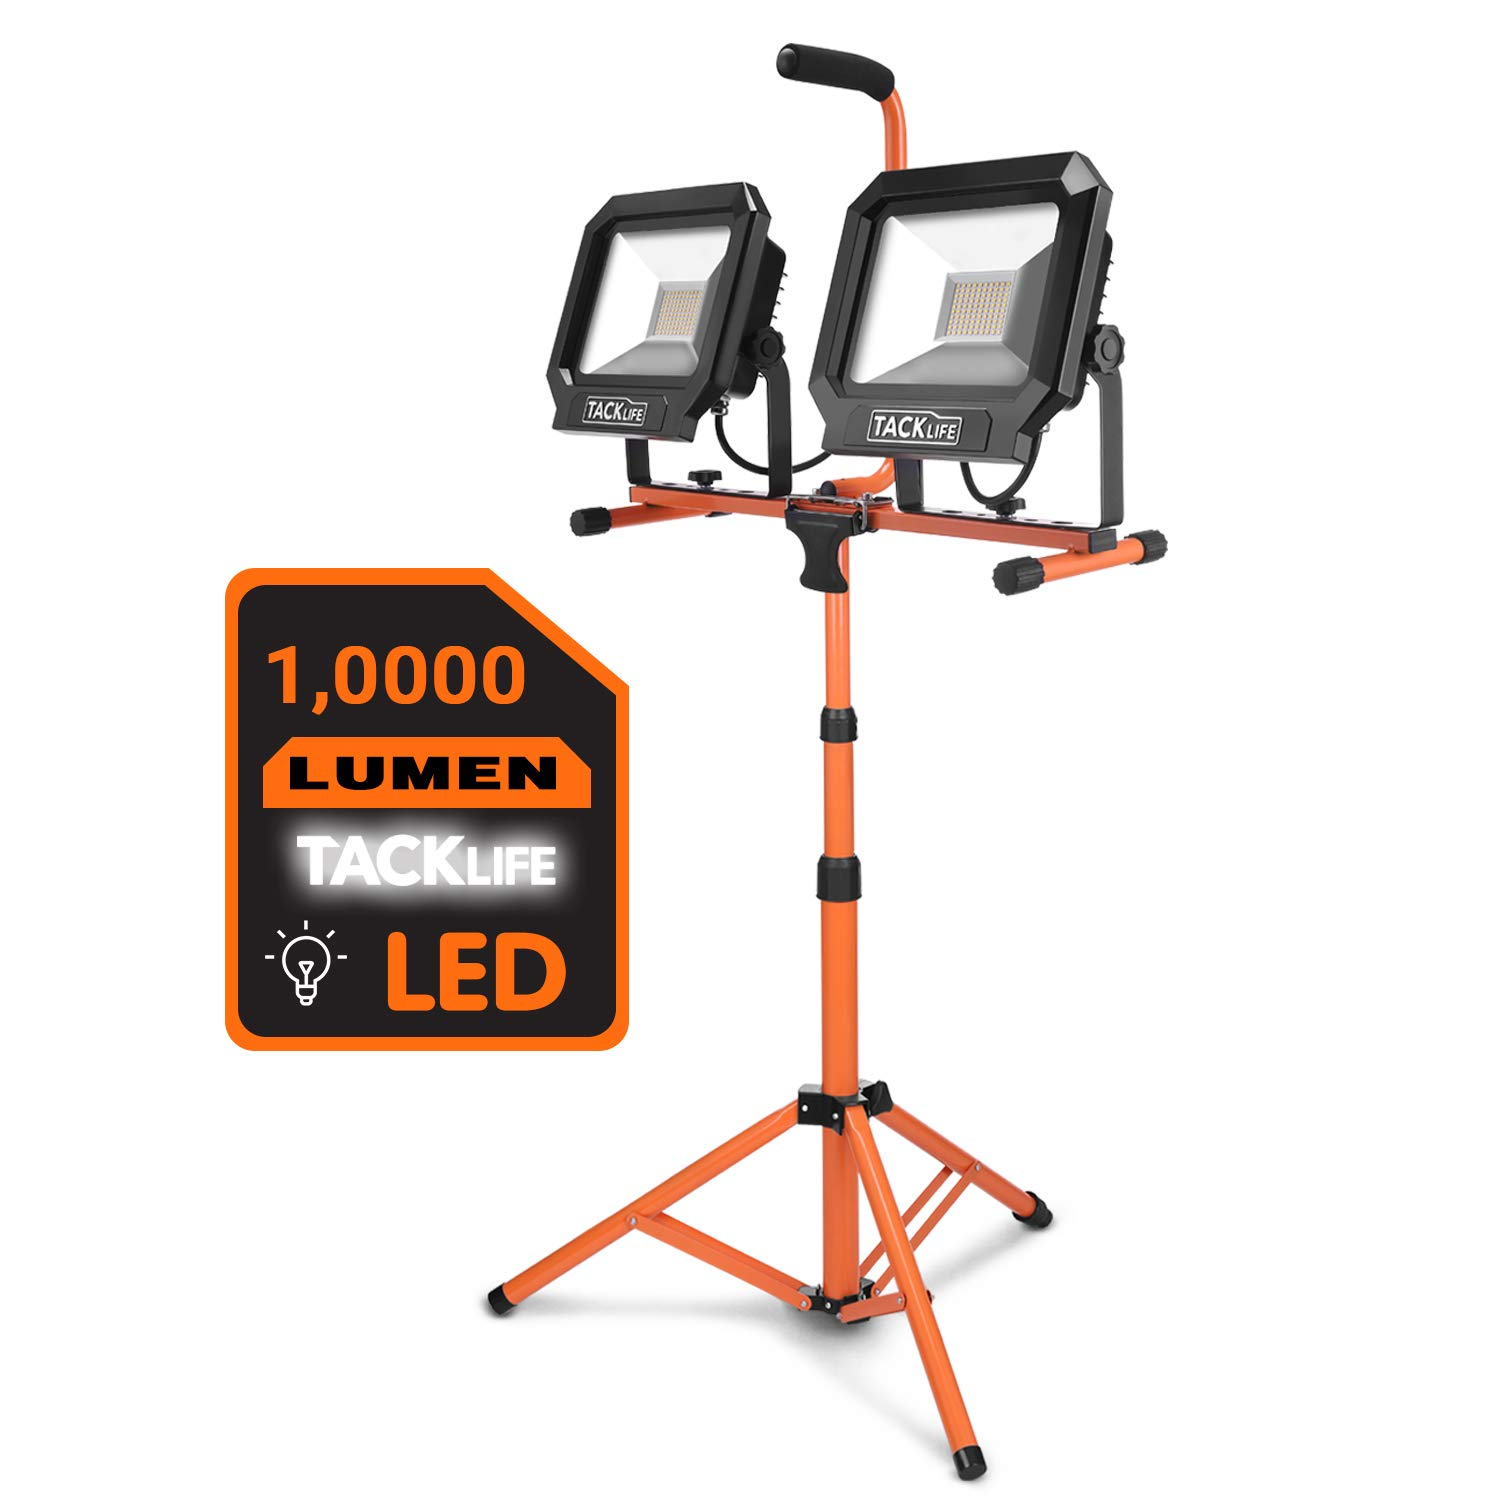 TACKLIFE 10000 Lumen Tripod LED Work Light with Two-Head Total 100W Work Lights, Metal Telescopic Tripod Stand, Rotating Waterproof Lamps and 16.5 Ft AC Power Cord by TACKLIFE